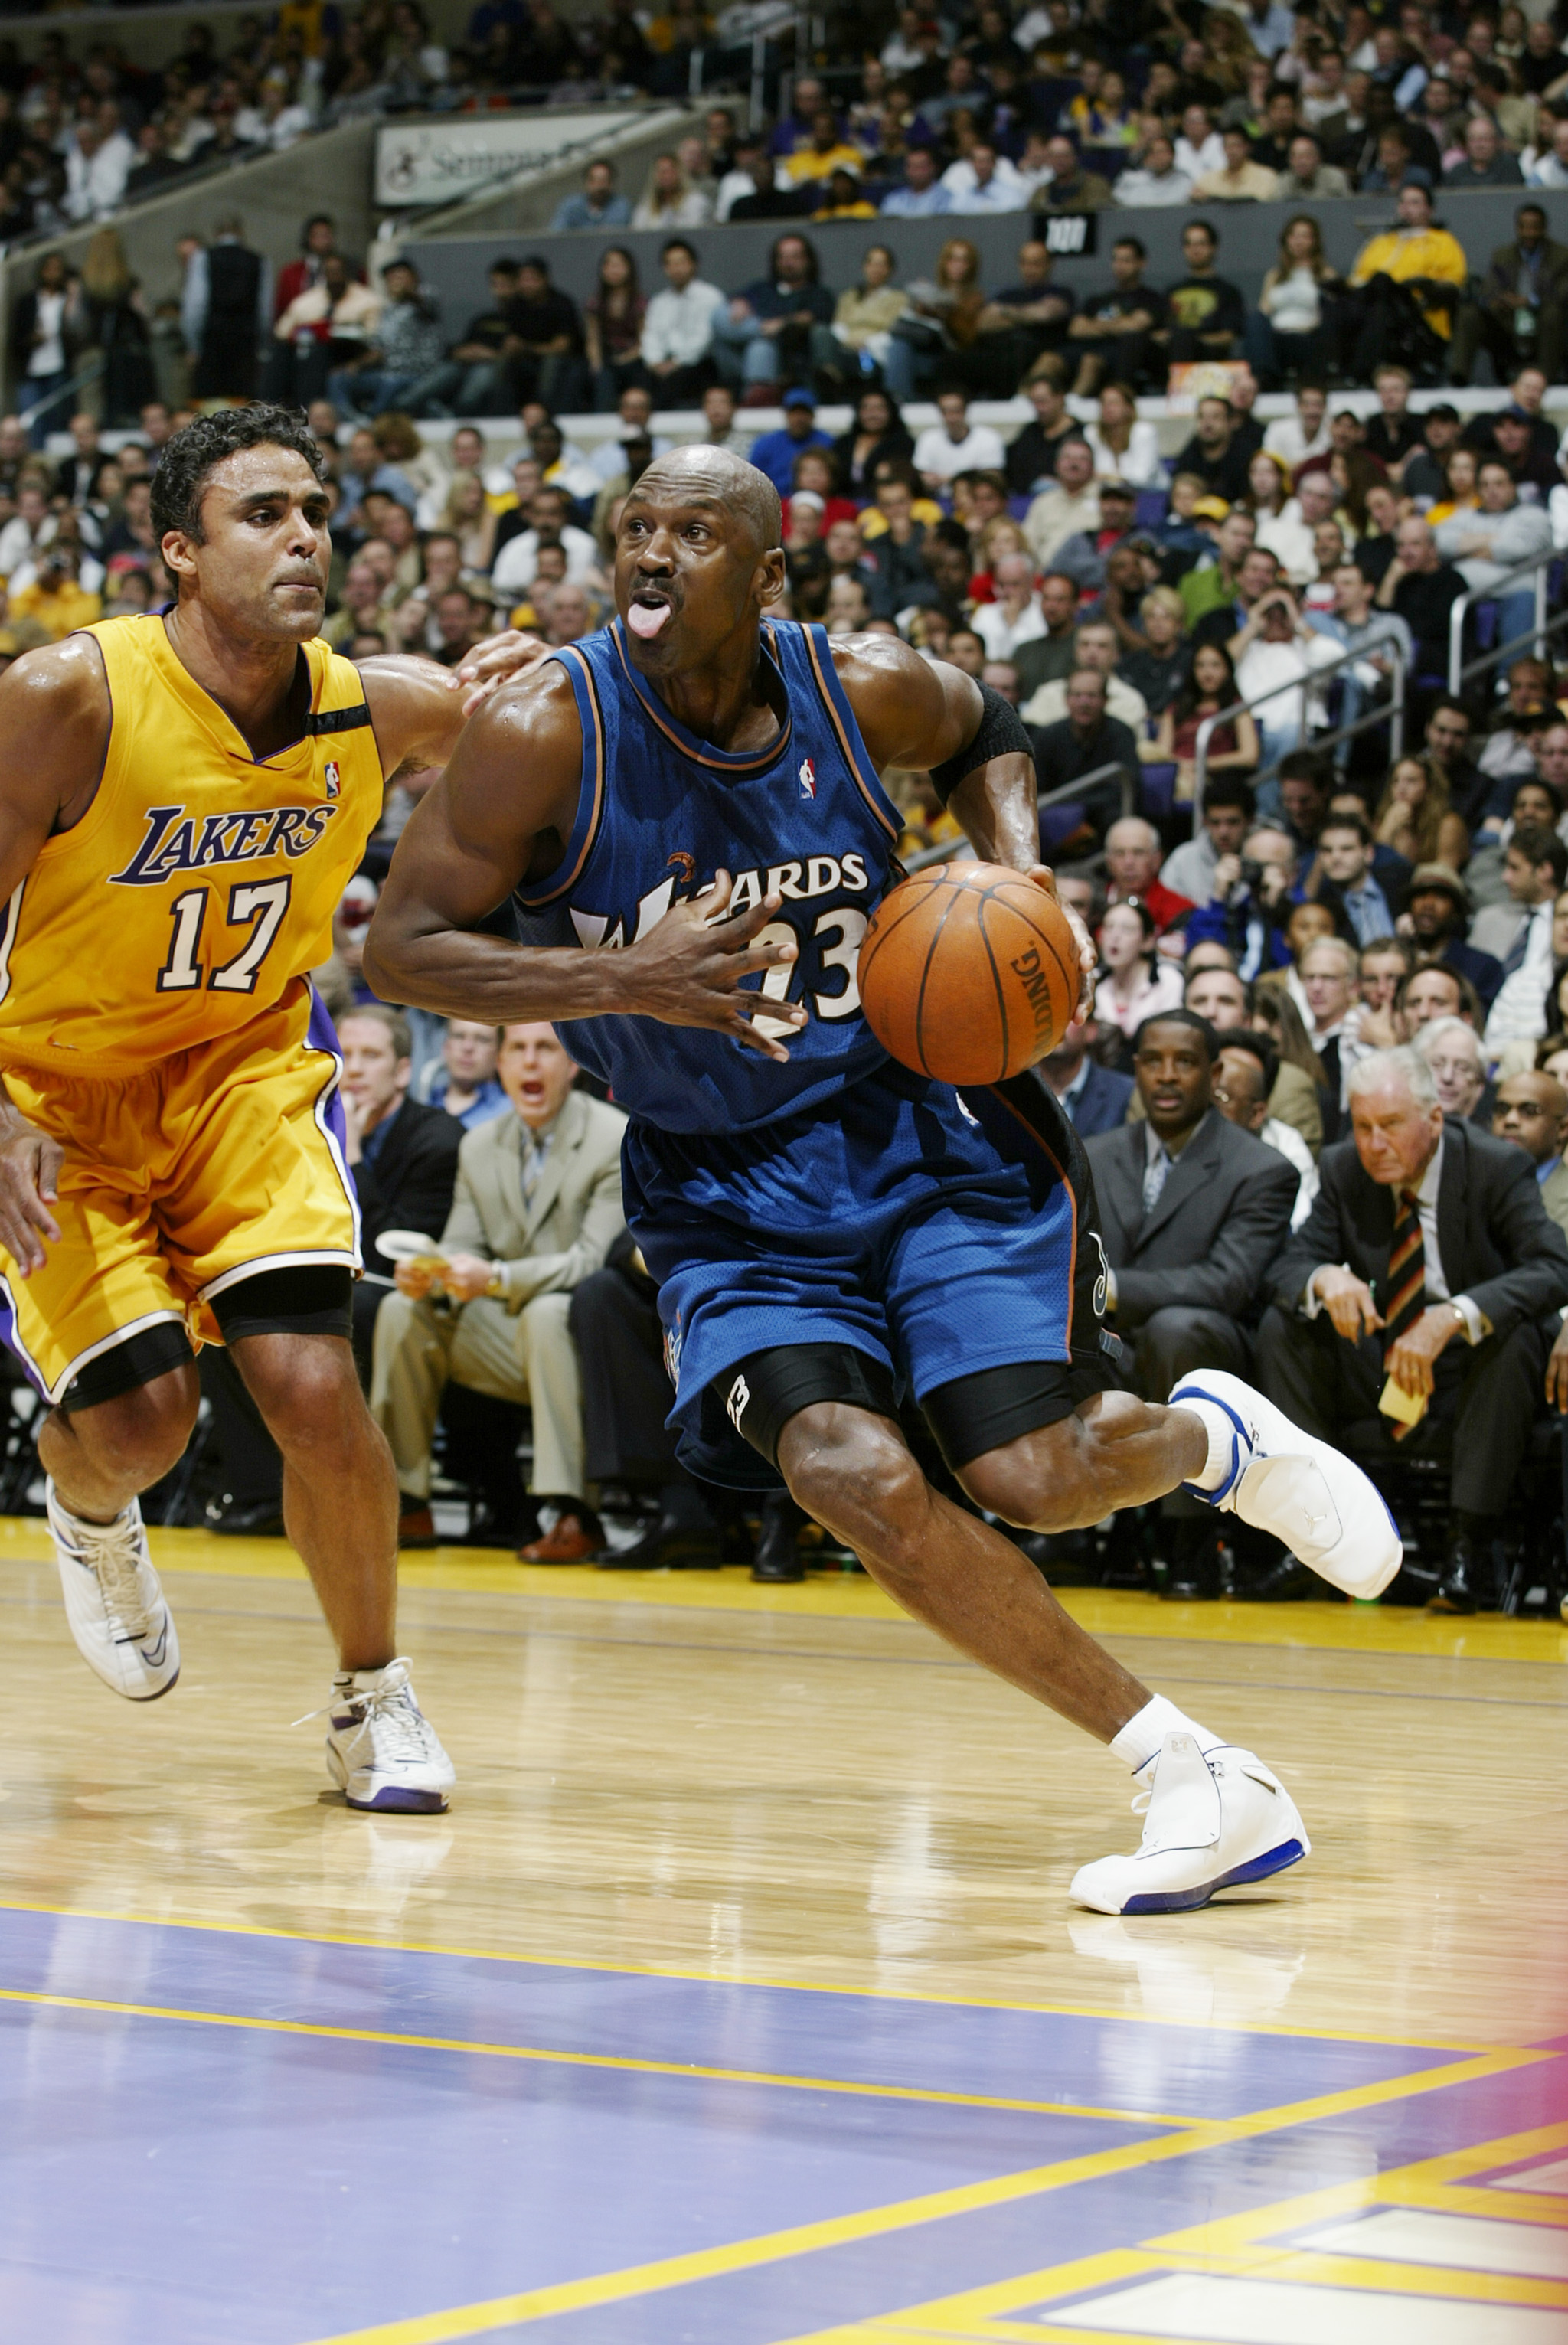 LOS ANGELES - MARCH 28:  Michael Jordan #23 of the Washington Wizards drives past Rick Fox #17 of the Los Angeles Lakers during the game at Staples Center on March 28, 2003 in Los Angeles, California.  The Lakers won 108-94.  NOTE TO USER: User expressly